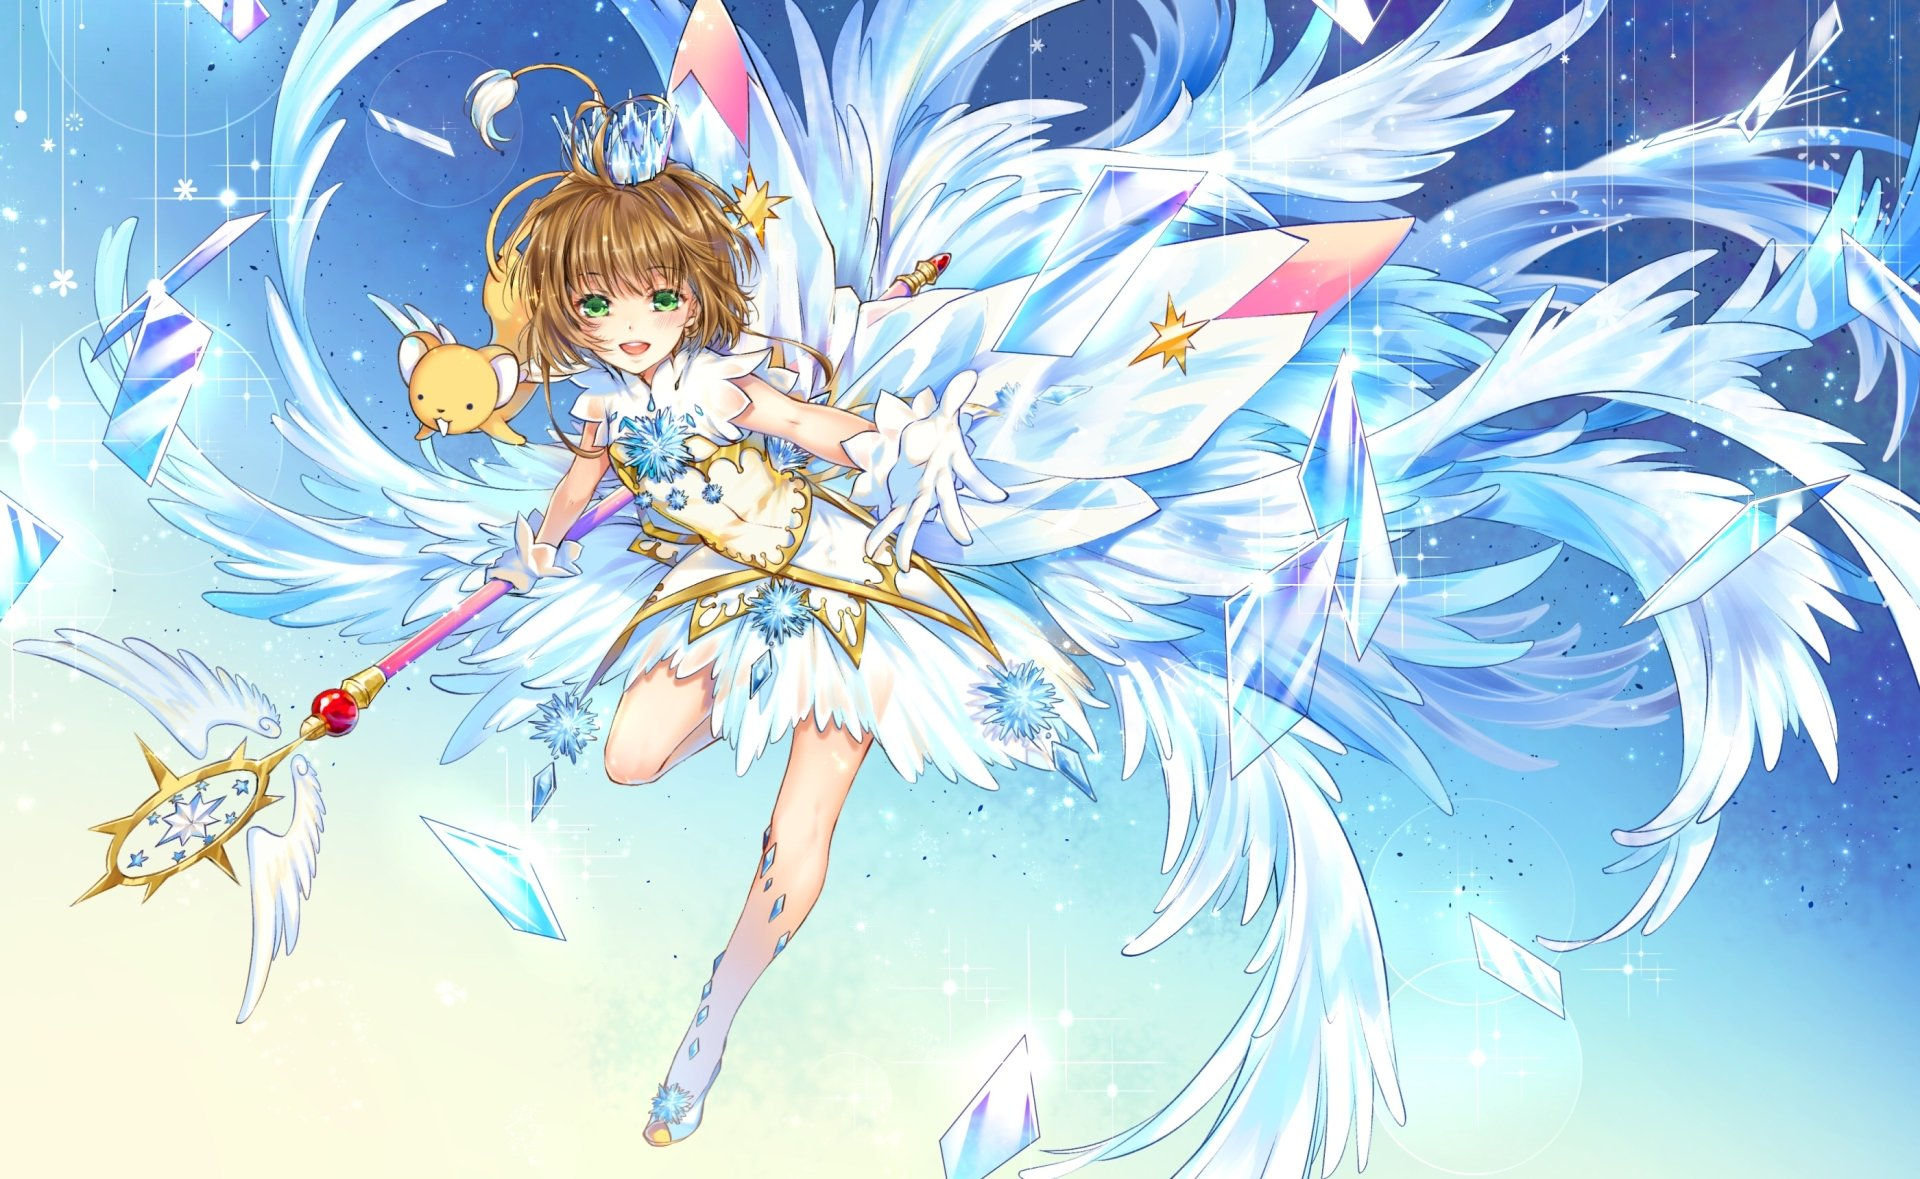 Anime - Cardcaptor Sakura  Anime Girl Crown Sakura Kinomoto Keroberos (Card Captor Sakura) Wallpaper